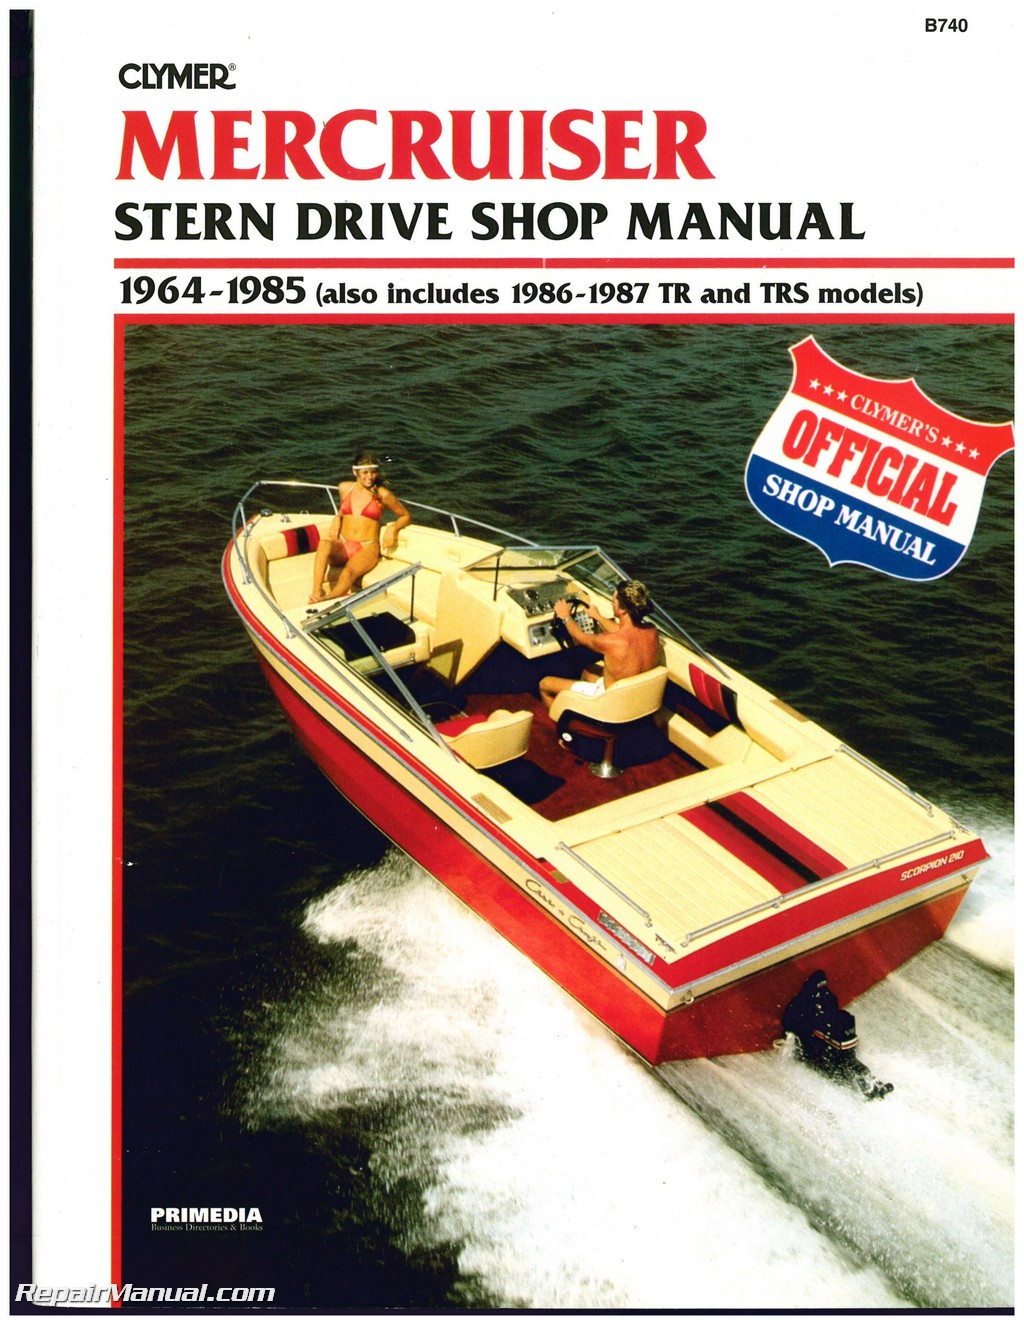 mercruiser stern drive boat engine shop manual 1964 1987 rh repairmanual com Mercruiser Sterndrive Parts Mercruiser Manual 250 4.5